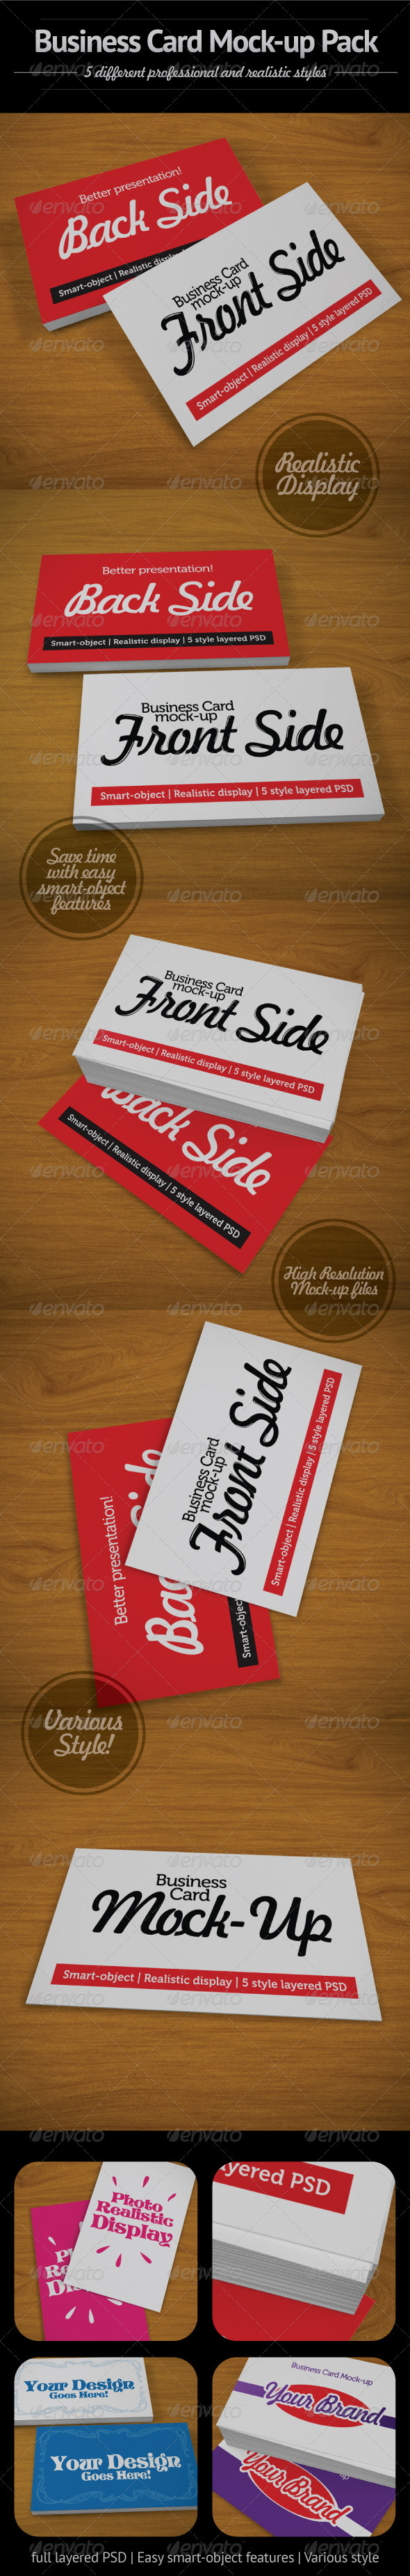 Business Card Mock-Up Pack - Business Cards Print